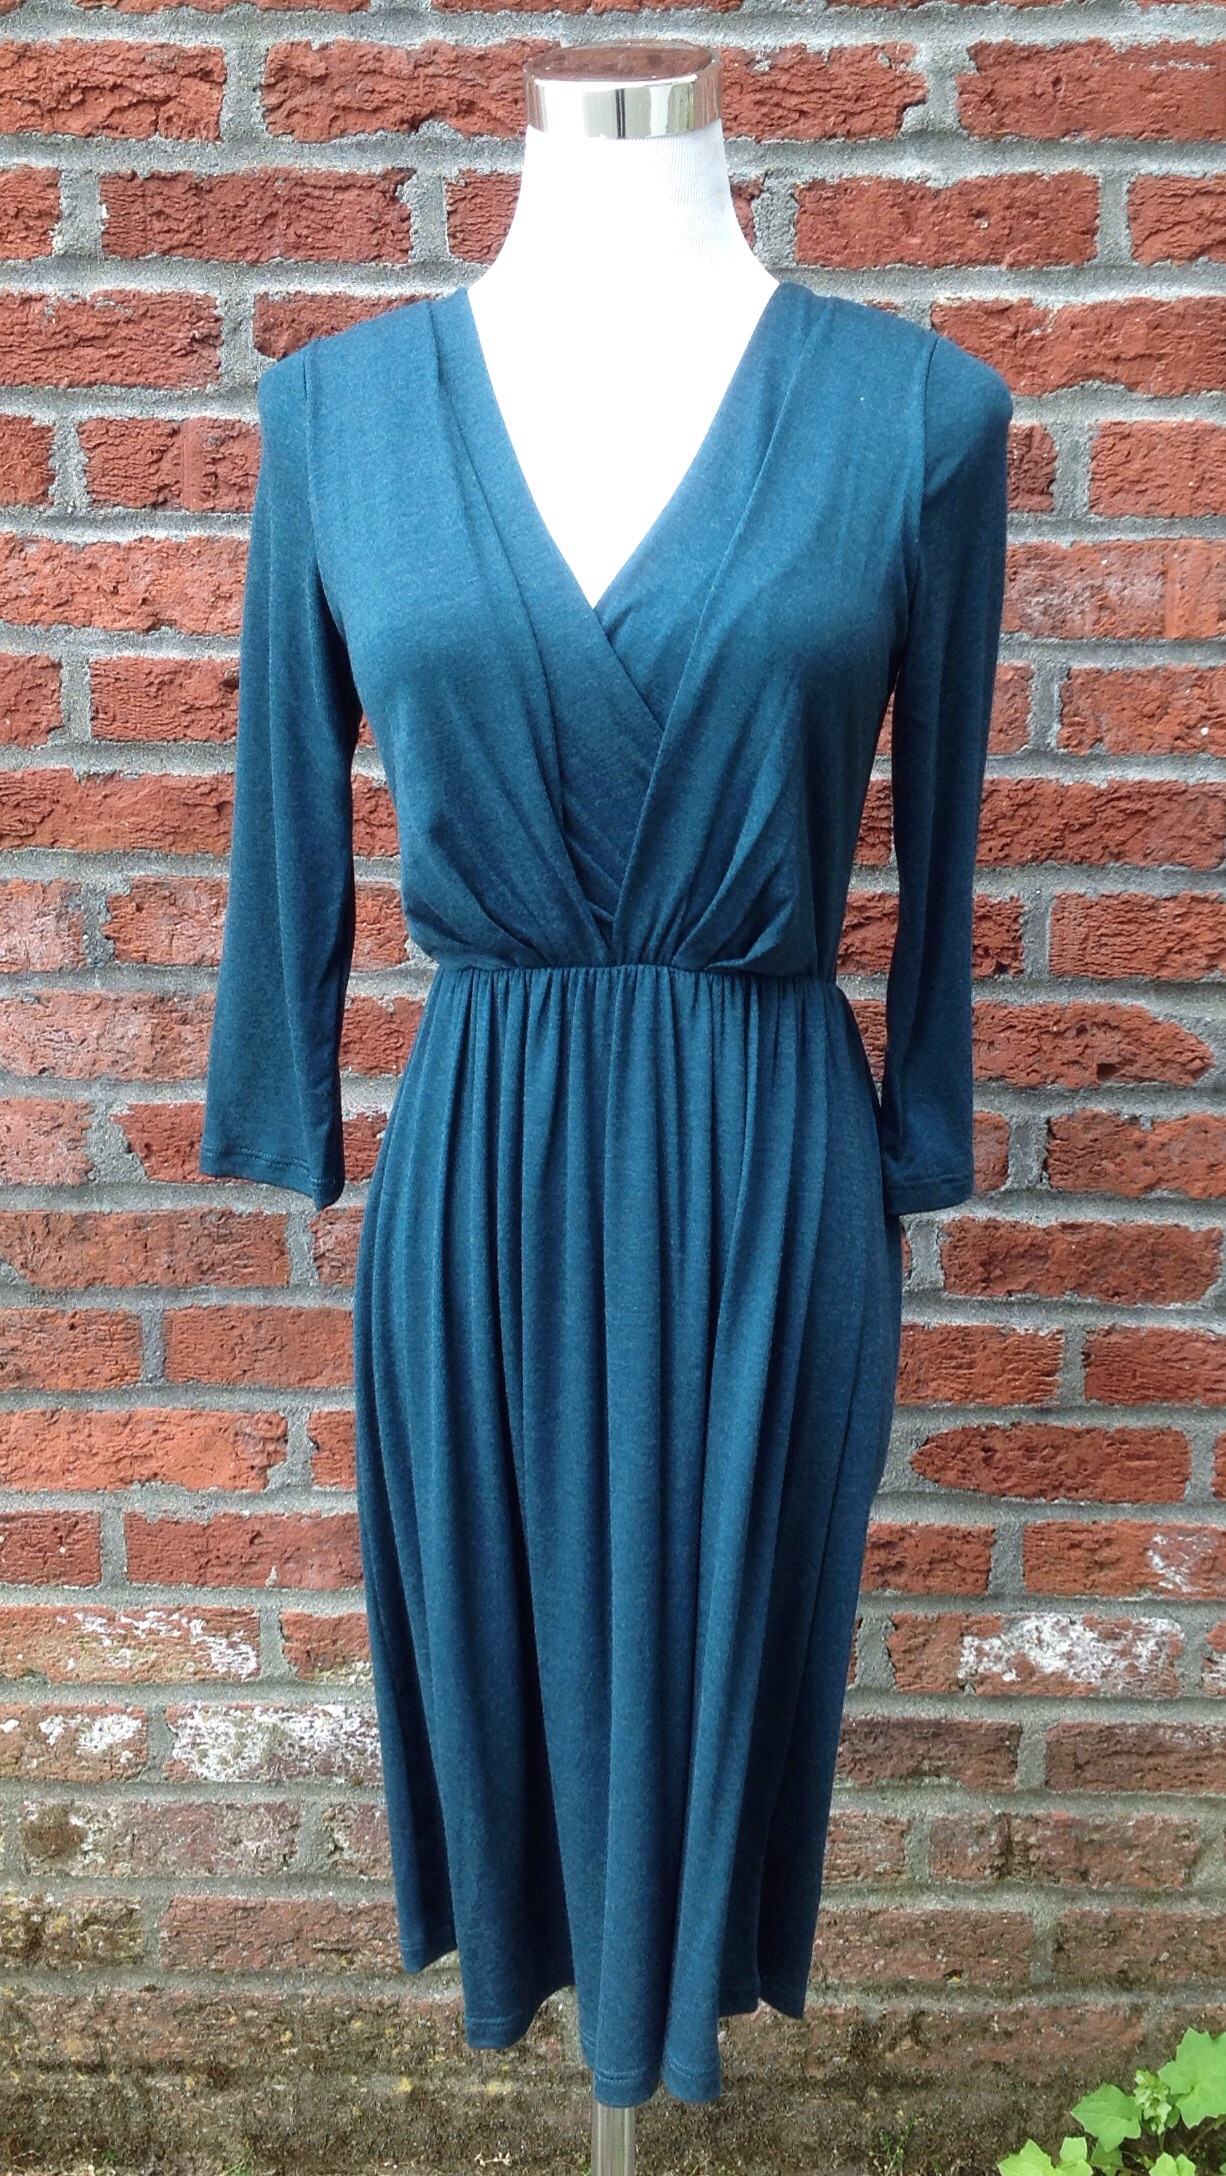 Teal knit dress with front pleats and gathered waist